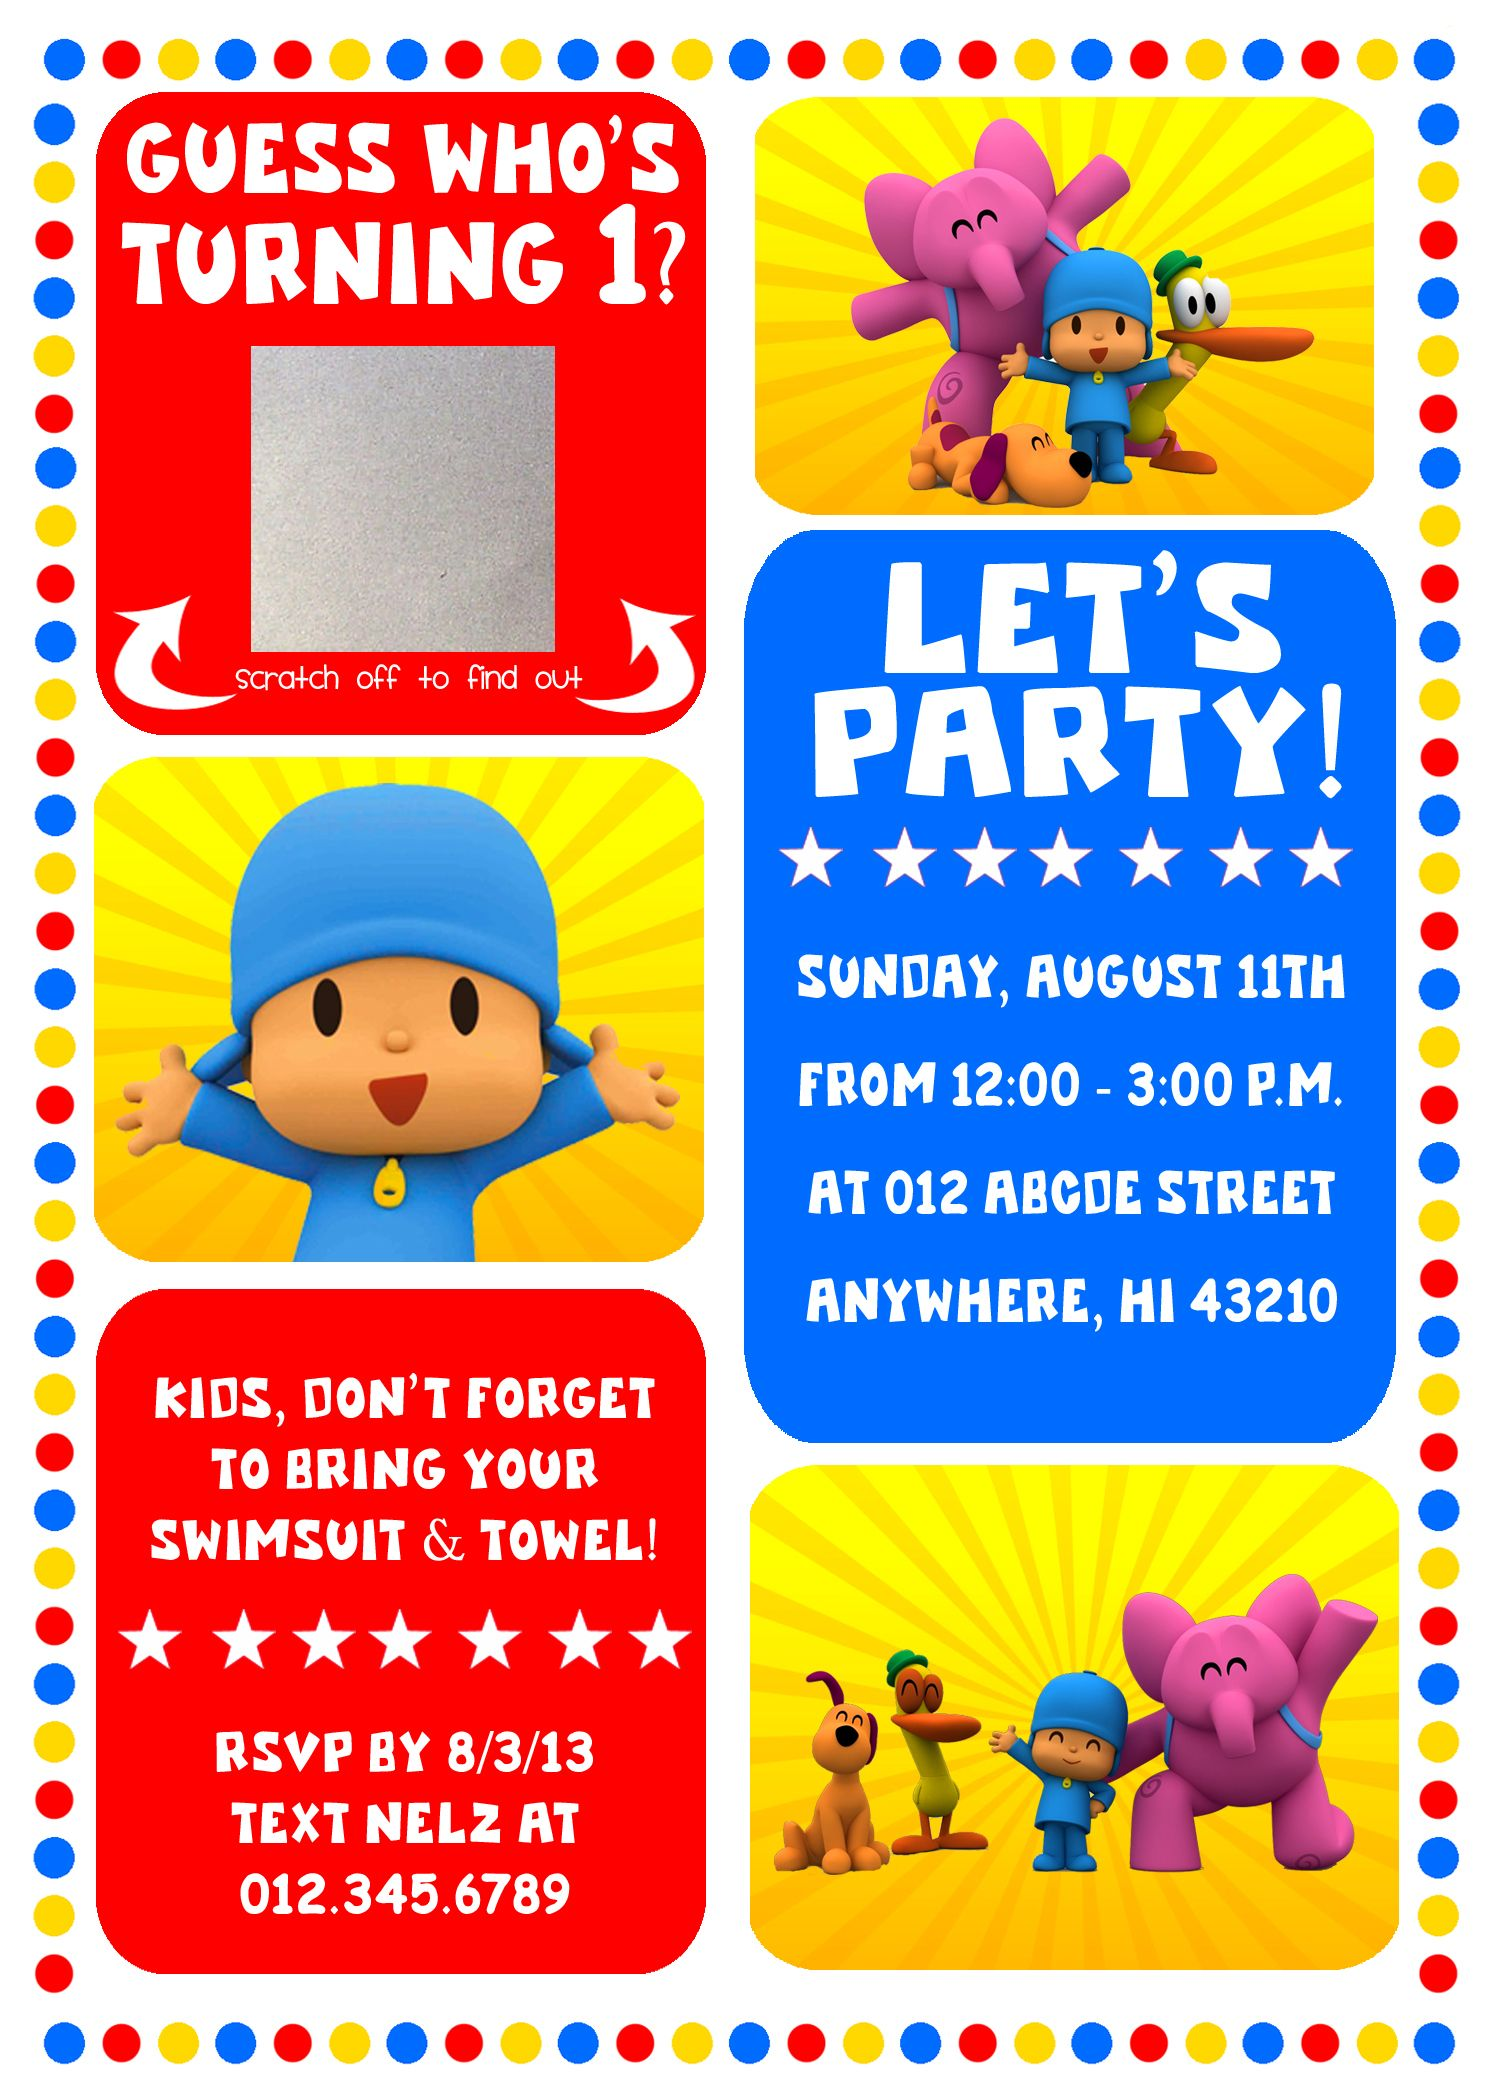 EANS 1ST BIRTHDAY POCOYO PARTY INVITATION if anyone needs this